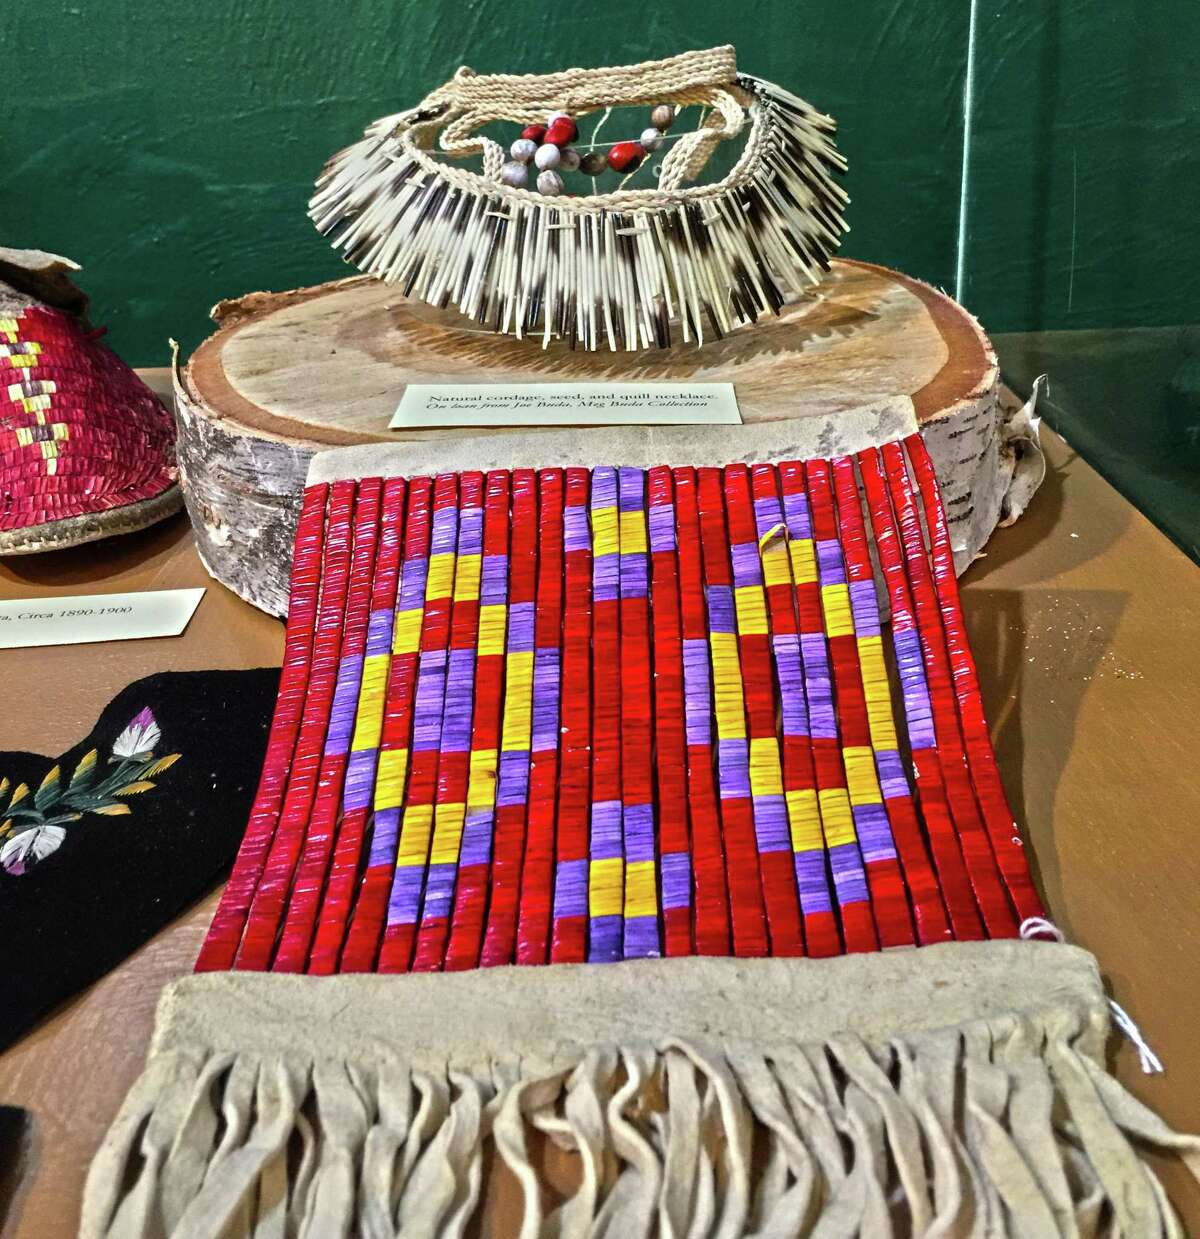 Examples of exhibits, including a bag made with porcupine quills, on display at the Institute of American Indian Studies.